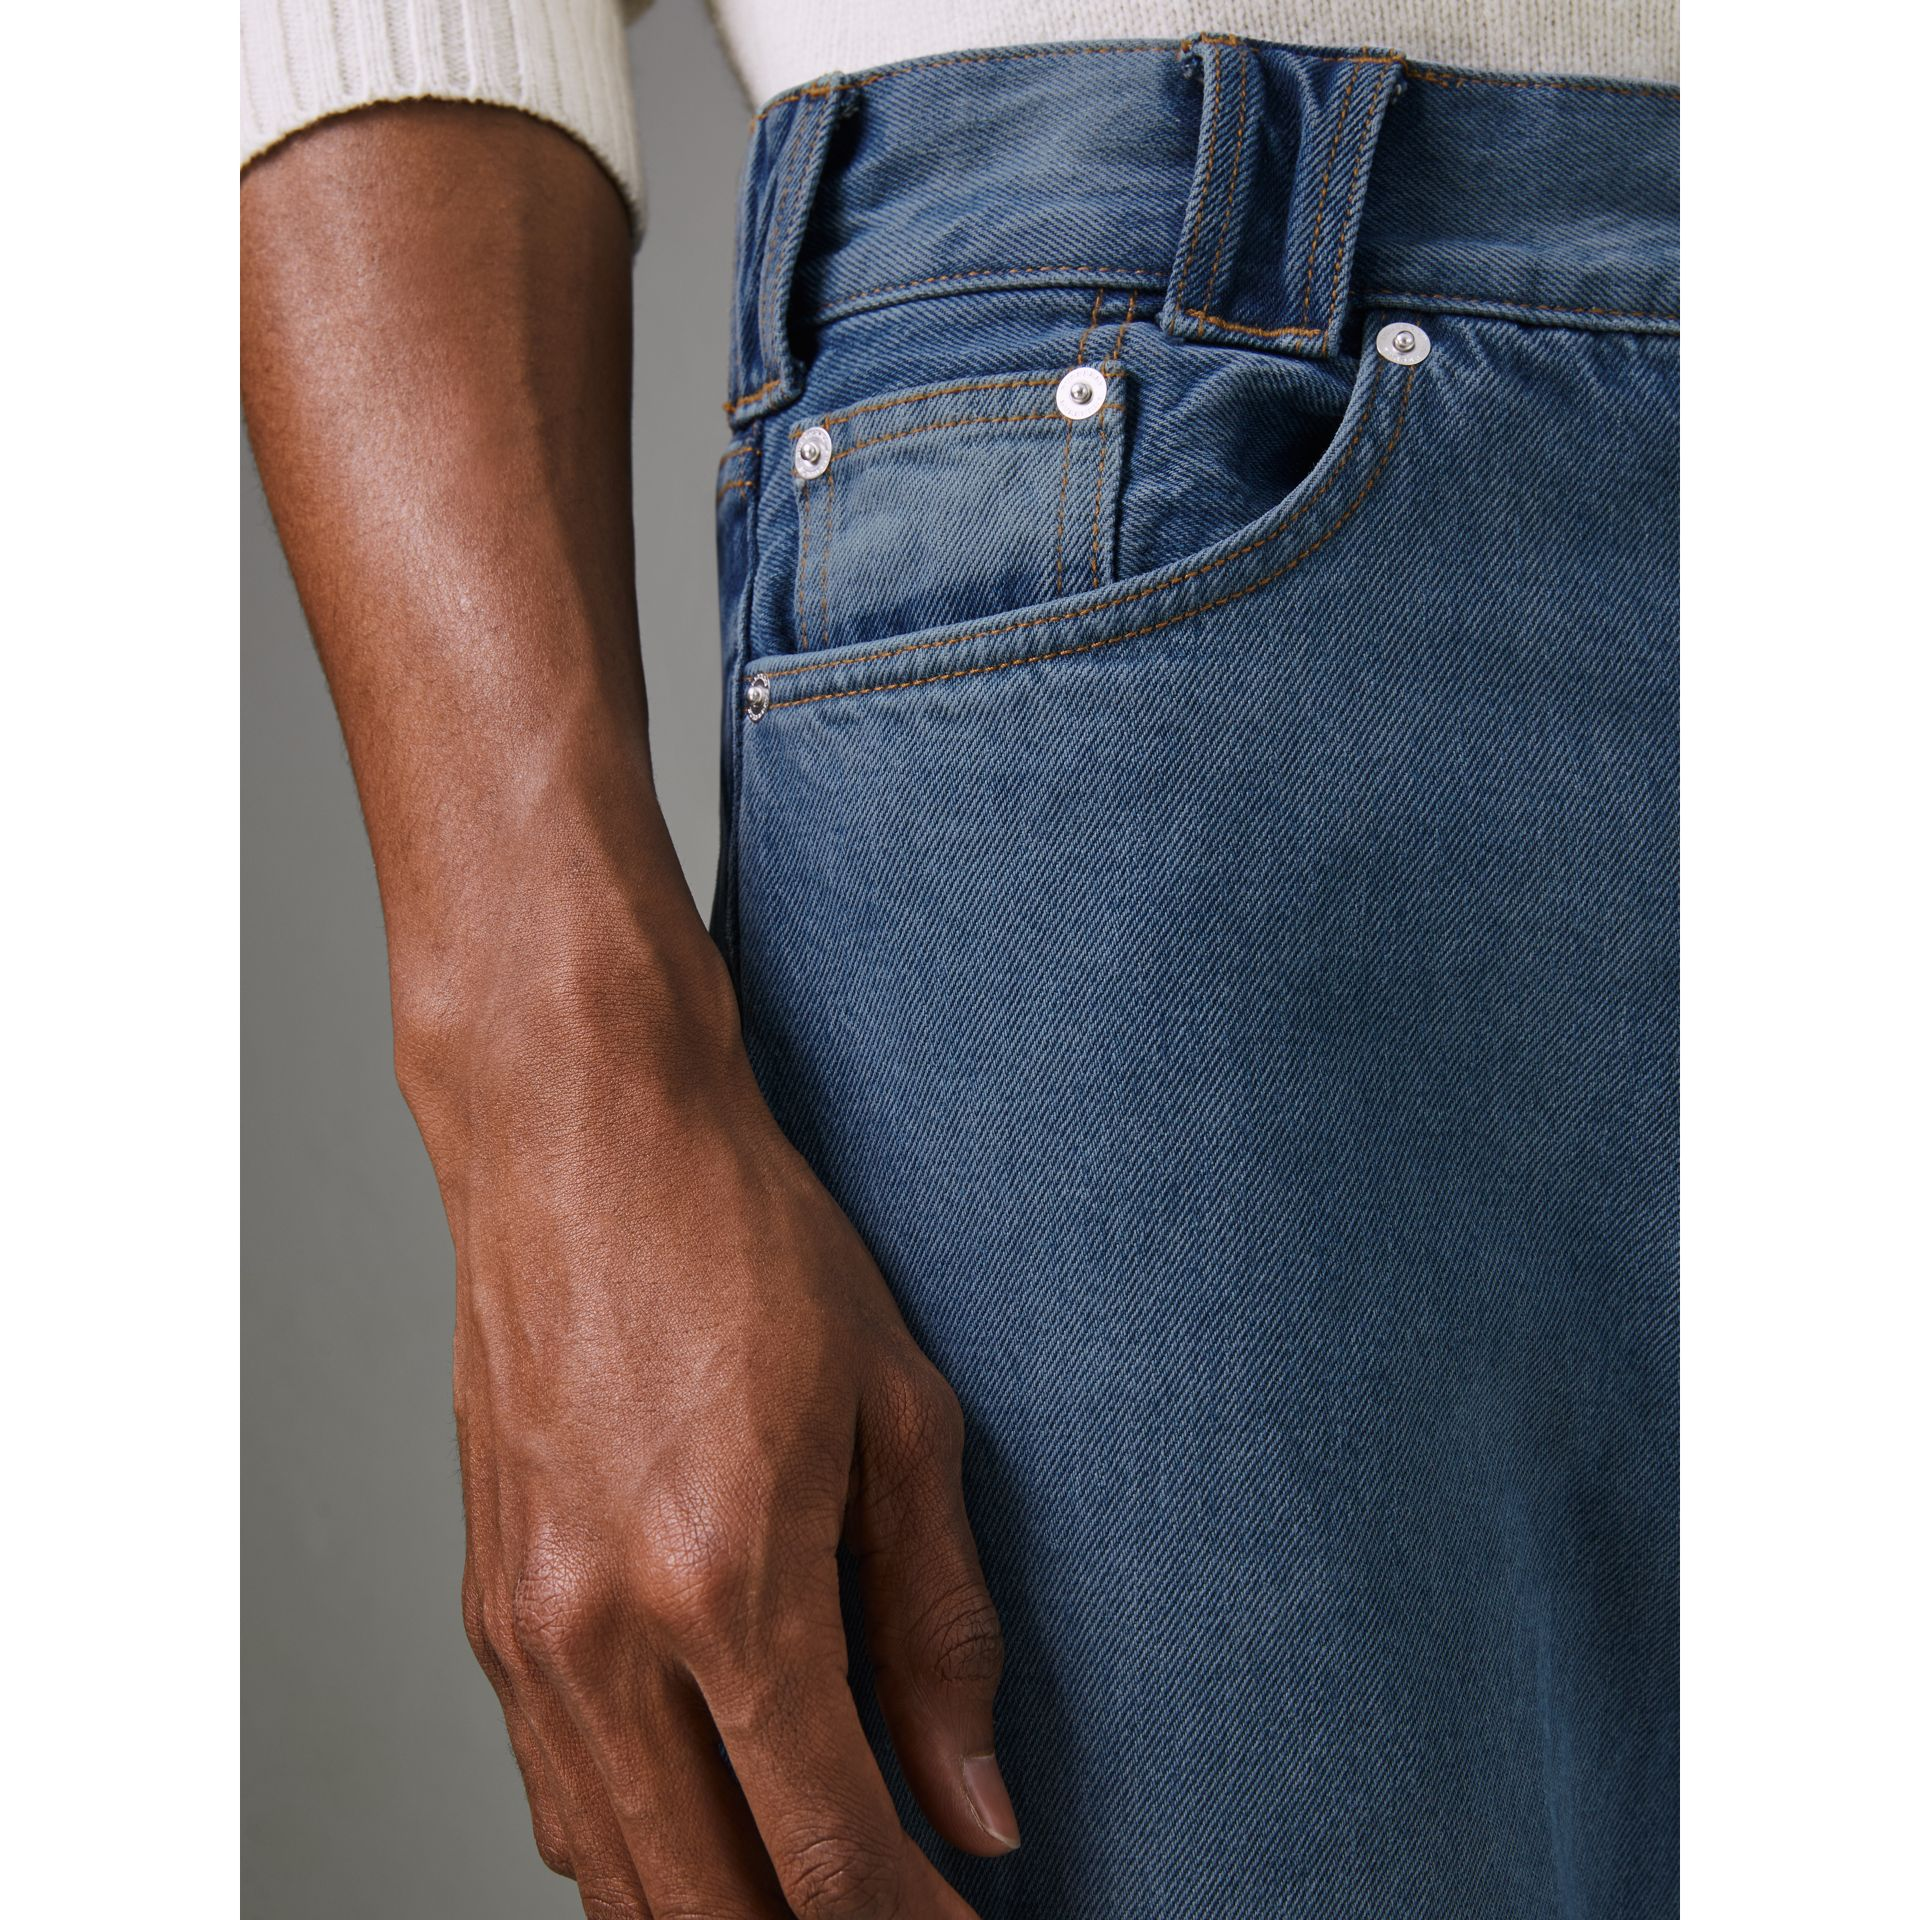 Straight Fit Two-tone Jeans in Indigo - Men | Burberry - gallery image 1